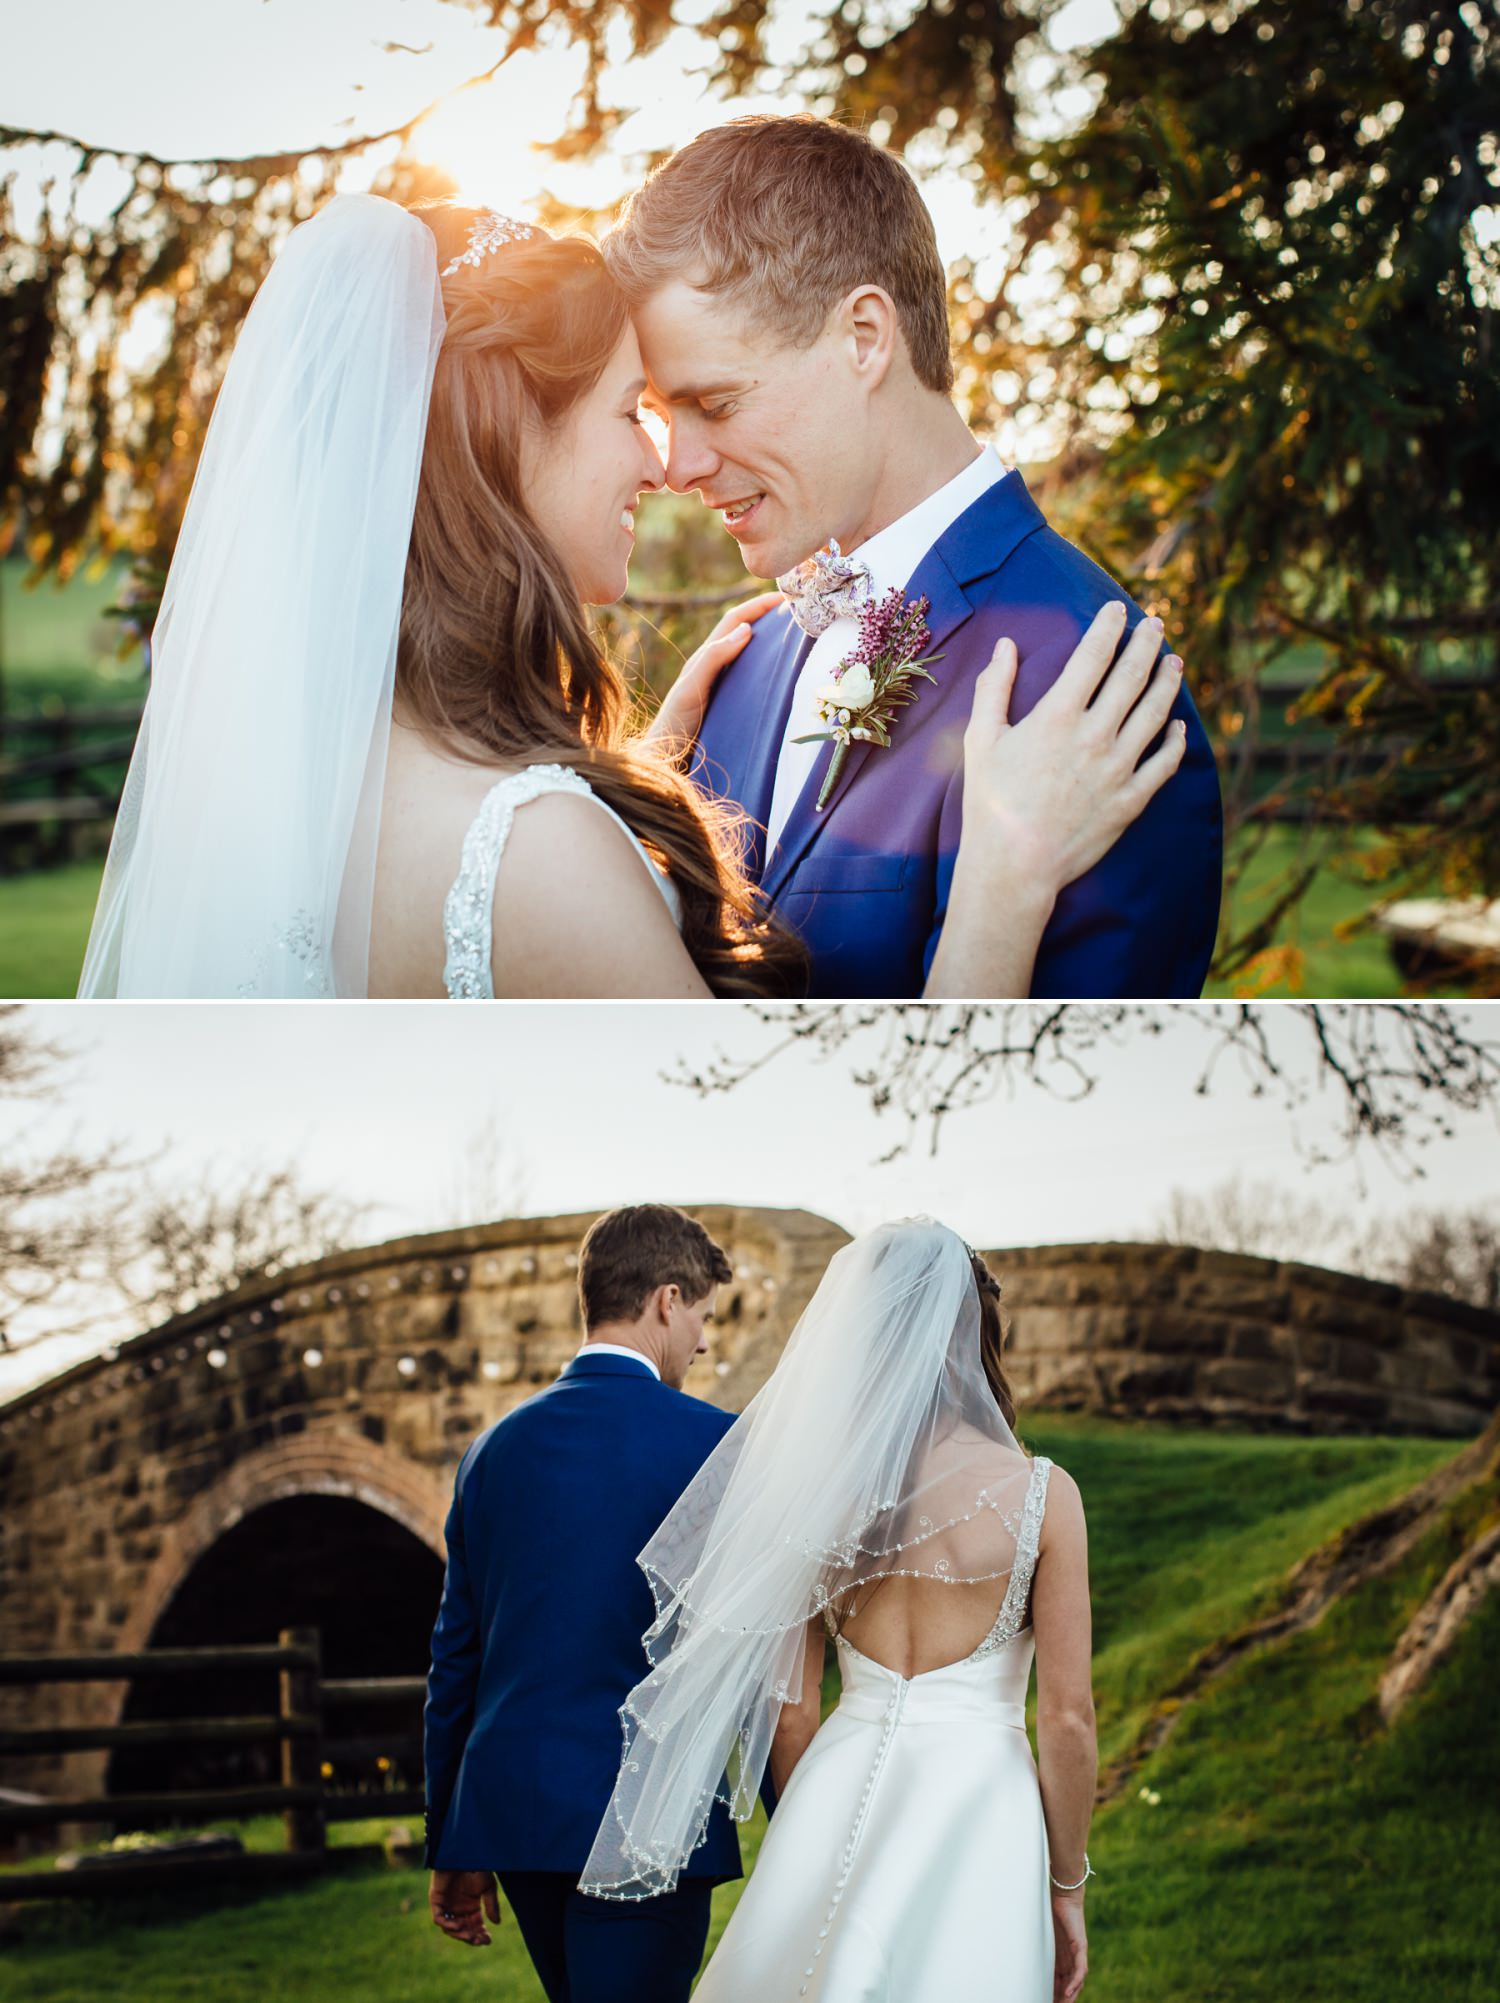 Wedding photography portraits in field in Tower Hill Barns